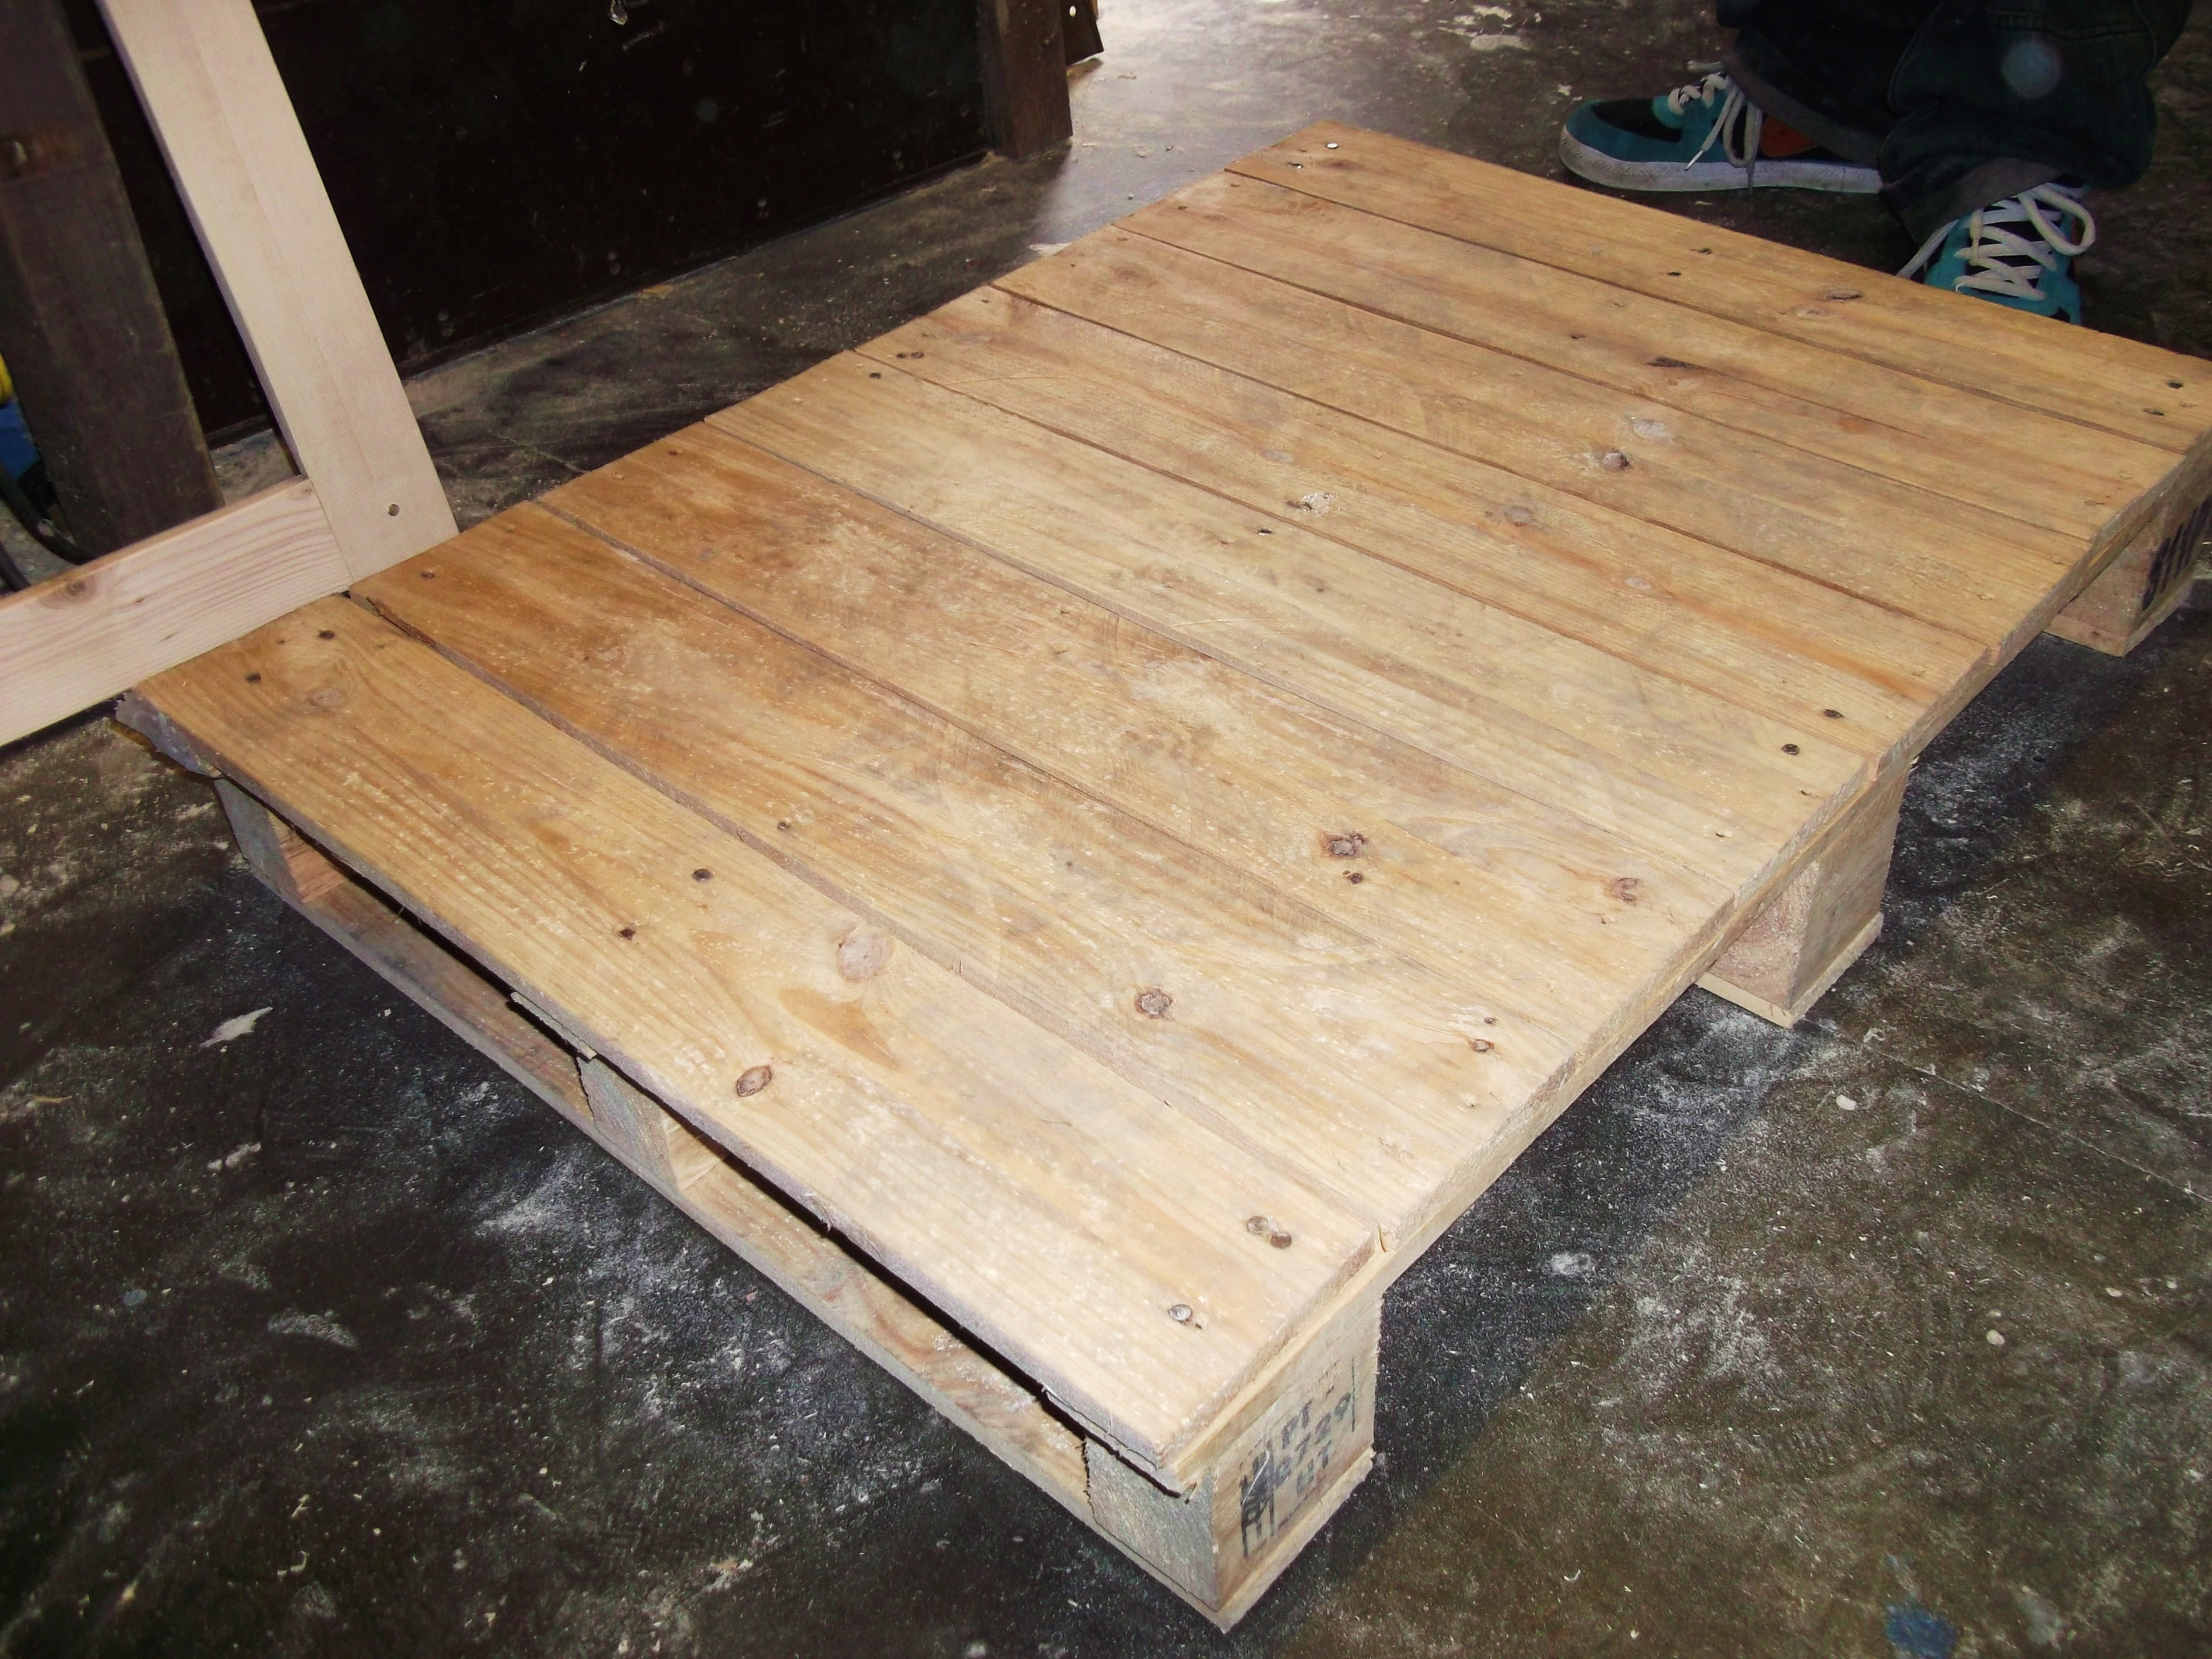 Salvaged Pallet Before Being Turned Into A Coffee Table!